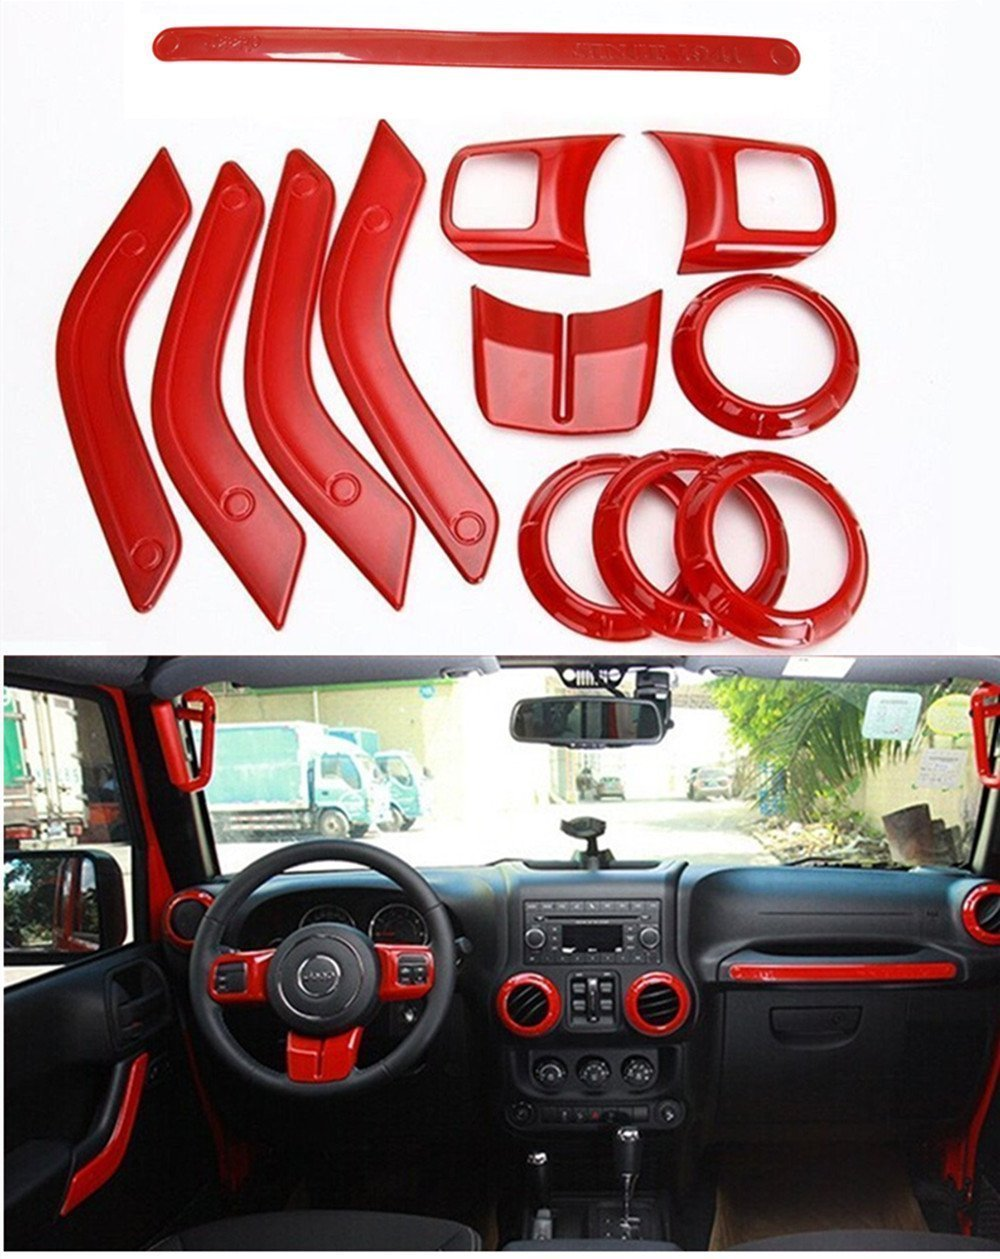 FMtoppeak 12 Pcs/Kits Red ABS Auto Interior Parts Decoration Car Inner Dashboard Trim Cover for Jeep Wrangler 4 Door 2011-2016 766111850216